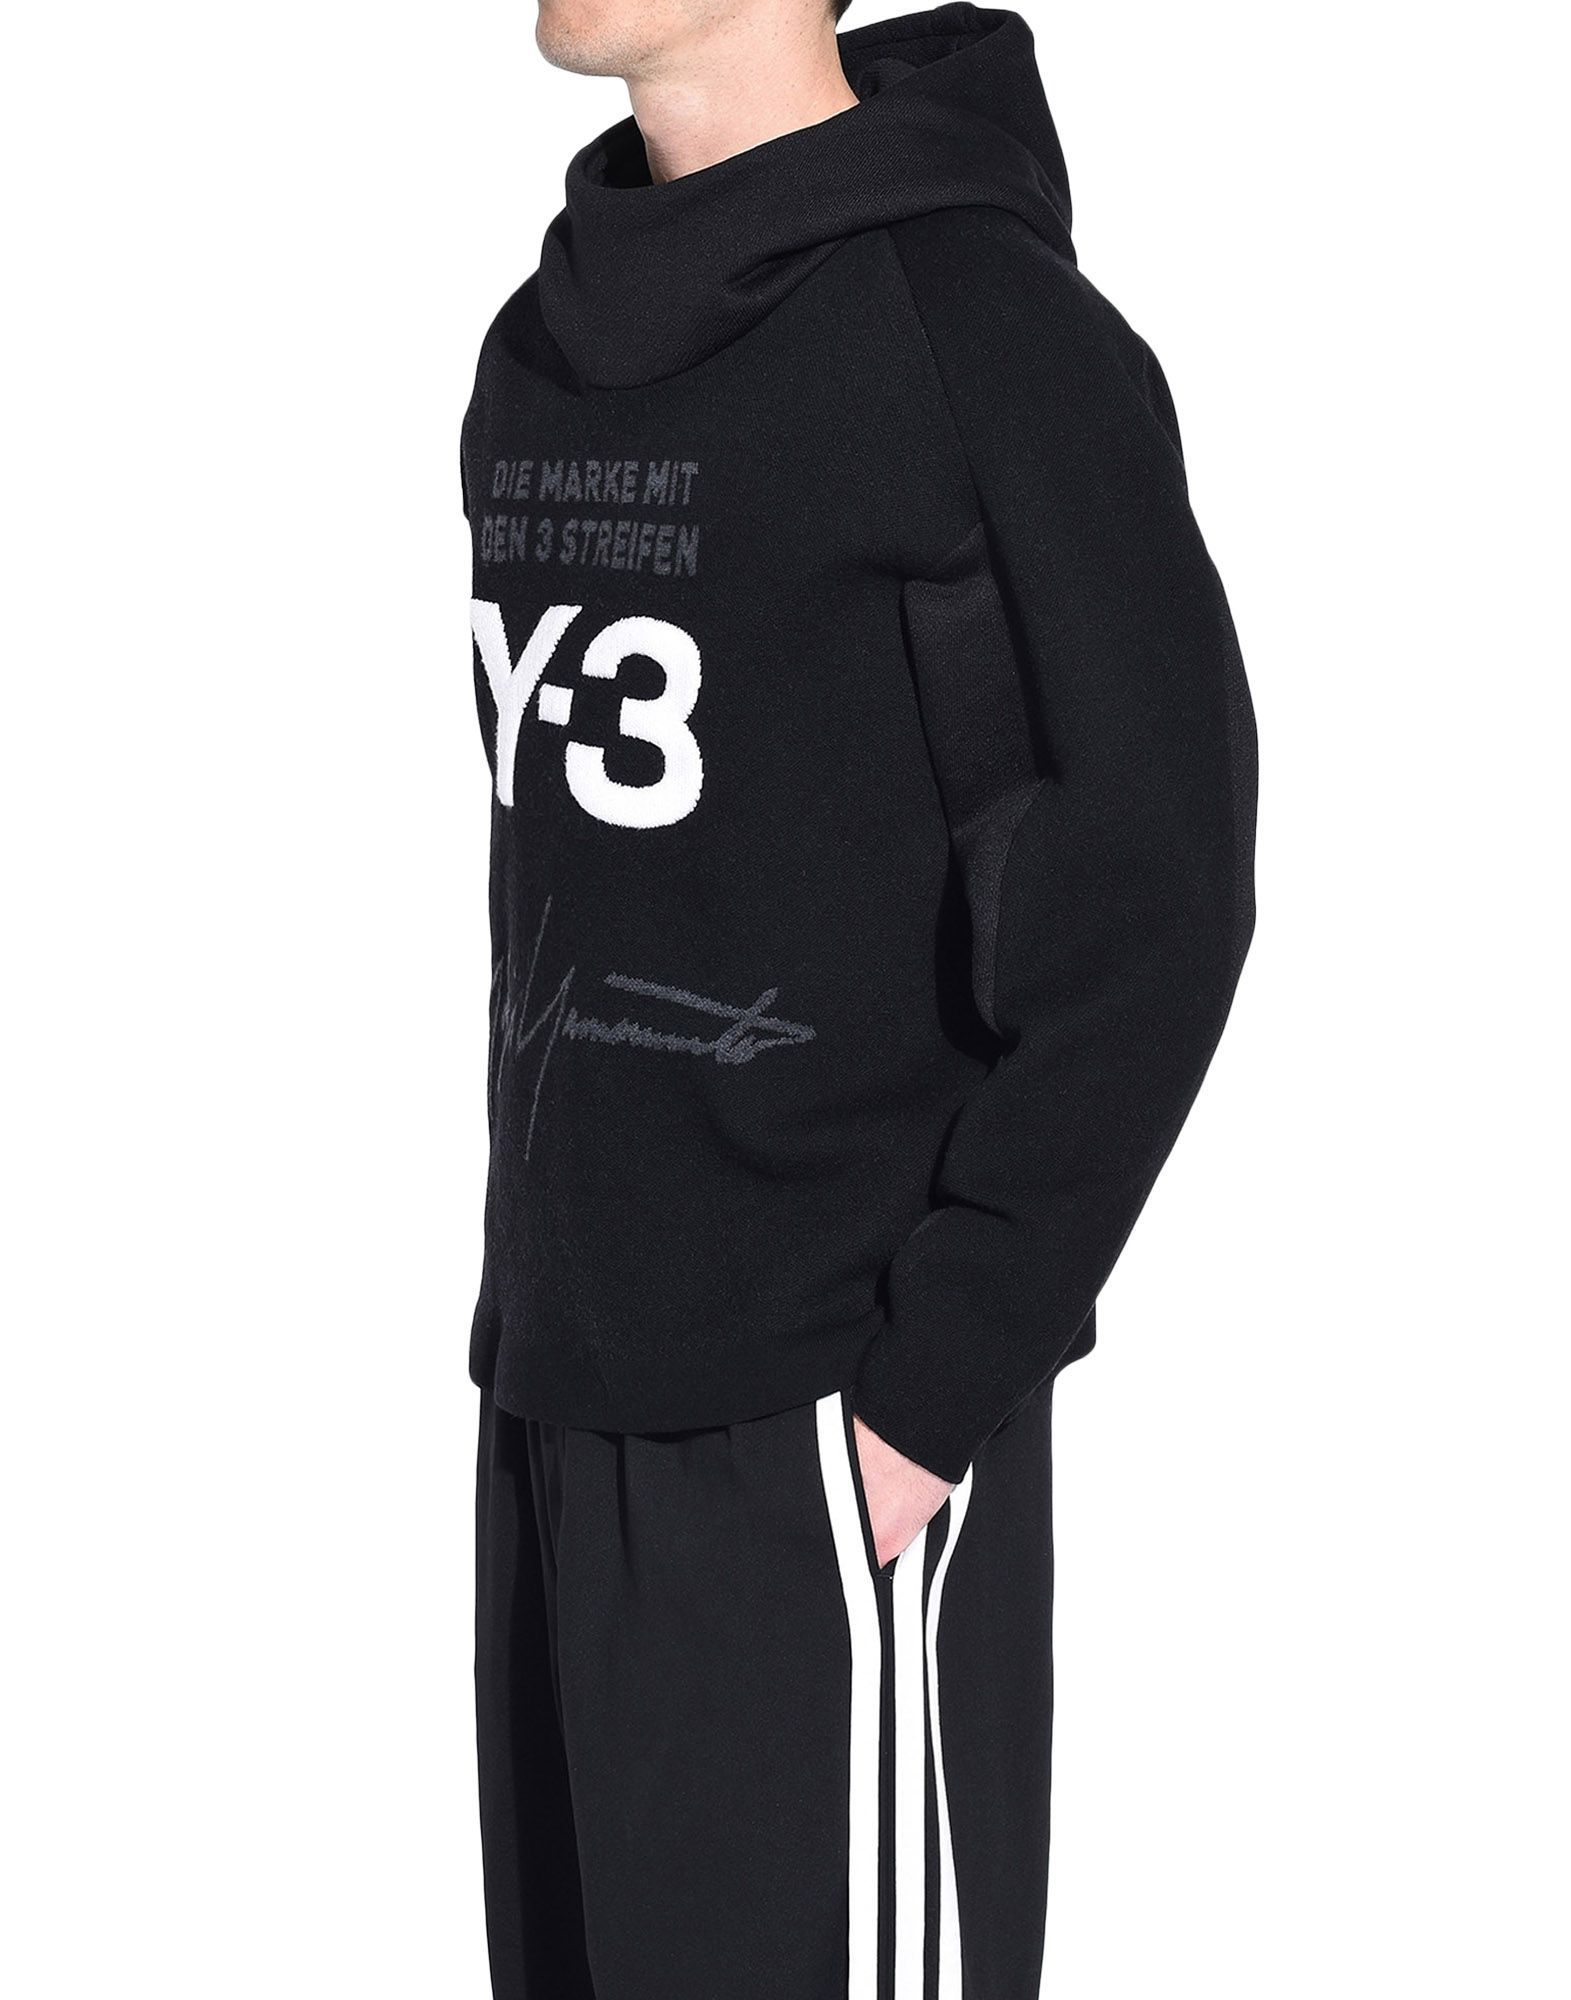 Y-3 Y-3 Knitted Stacked Logo Hoodie フード付きトレーナー メンズ e